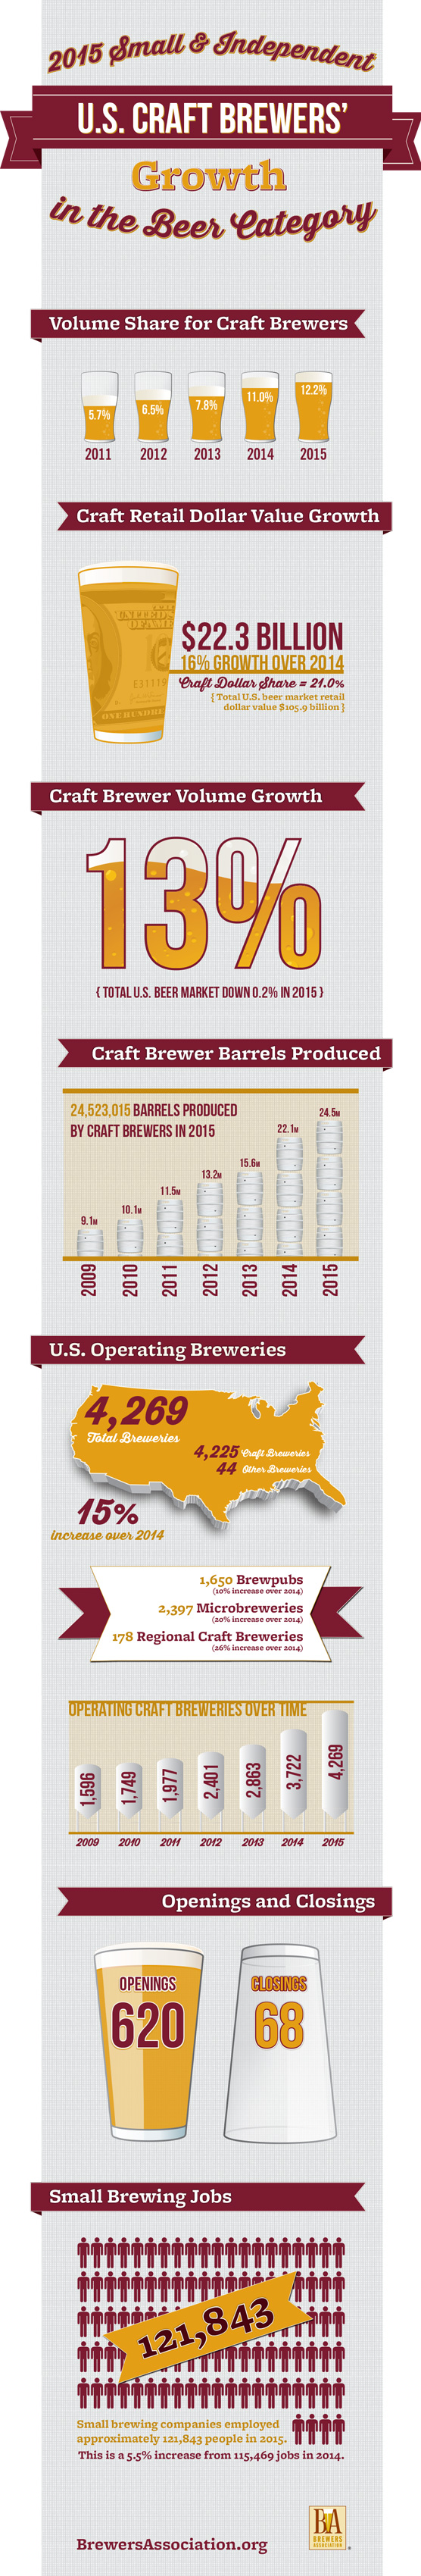 Craft Brewing Growth